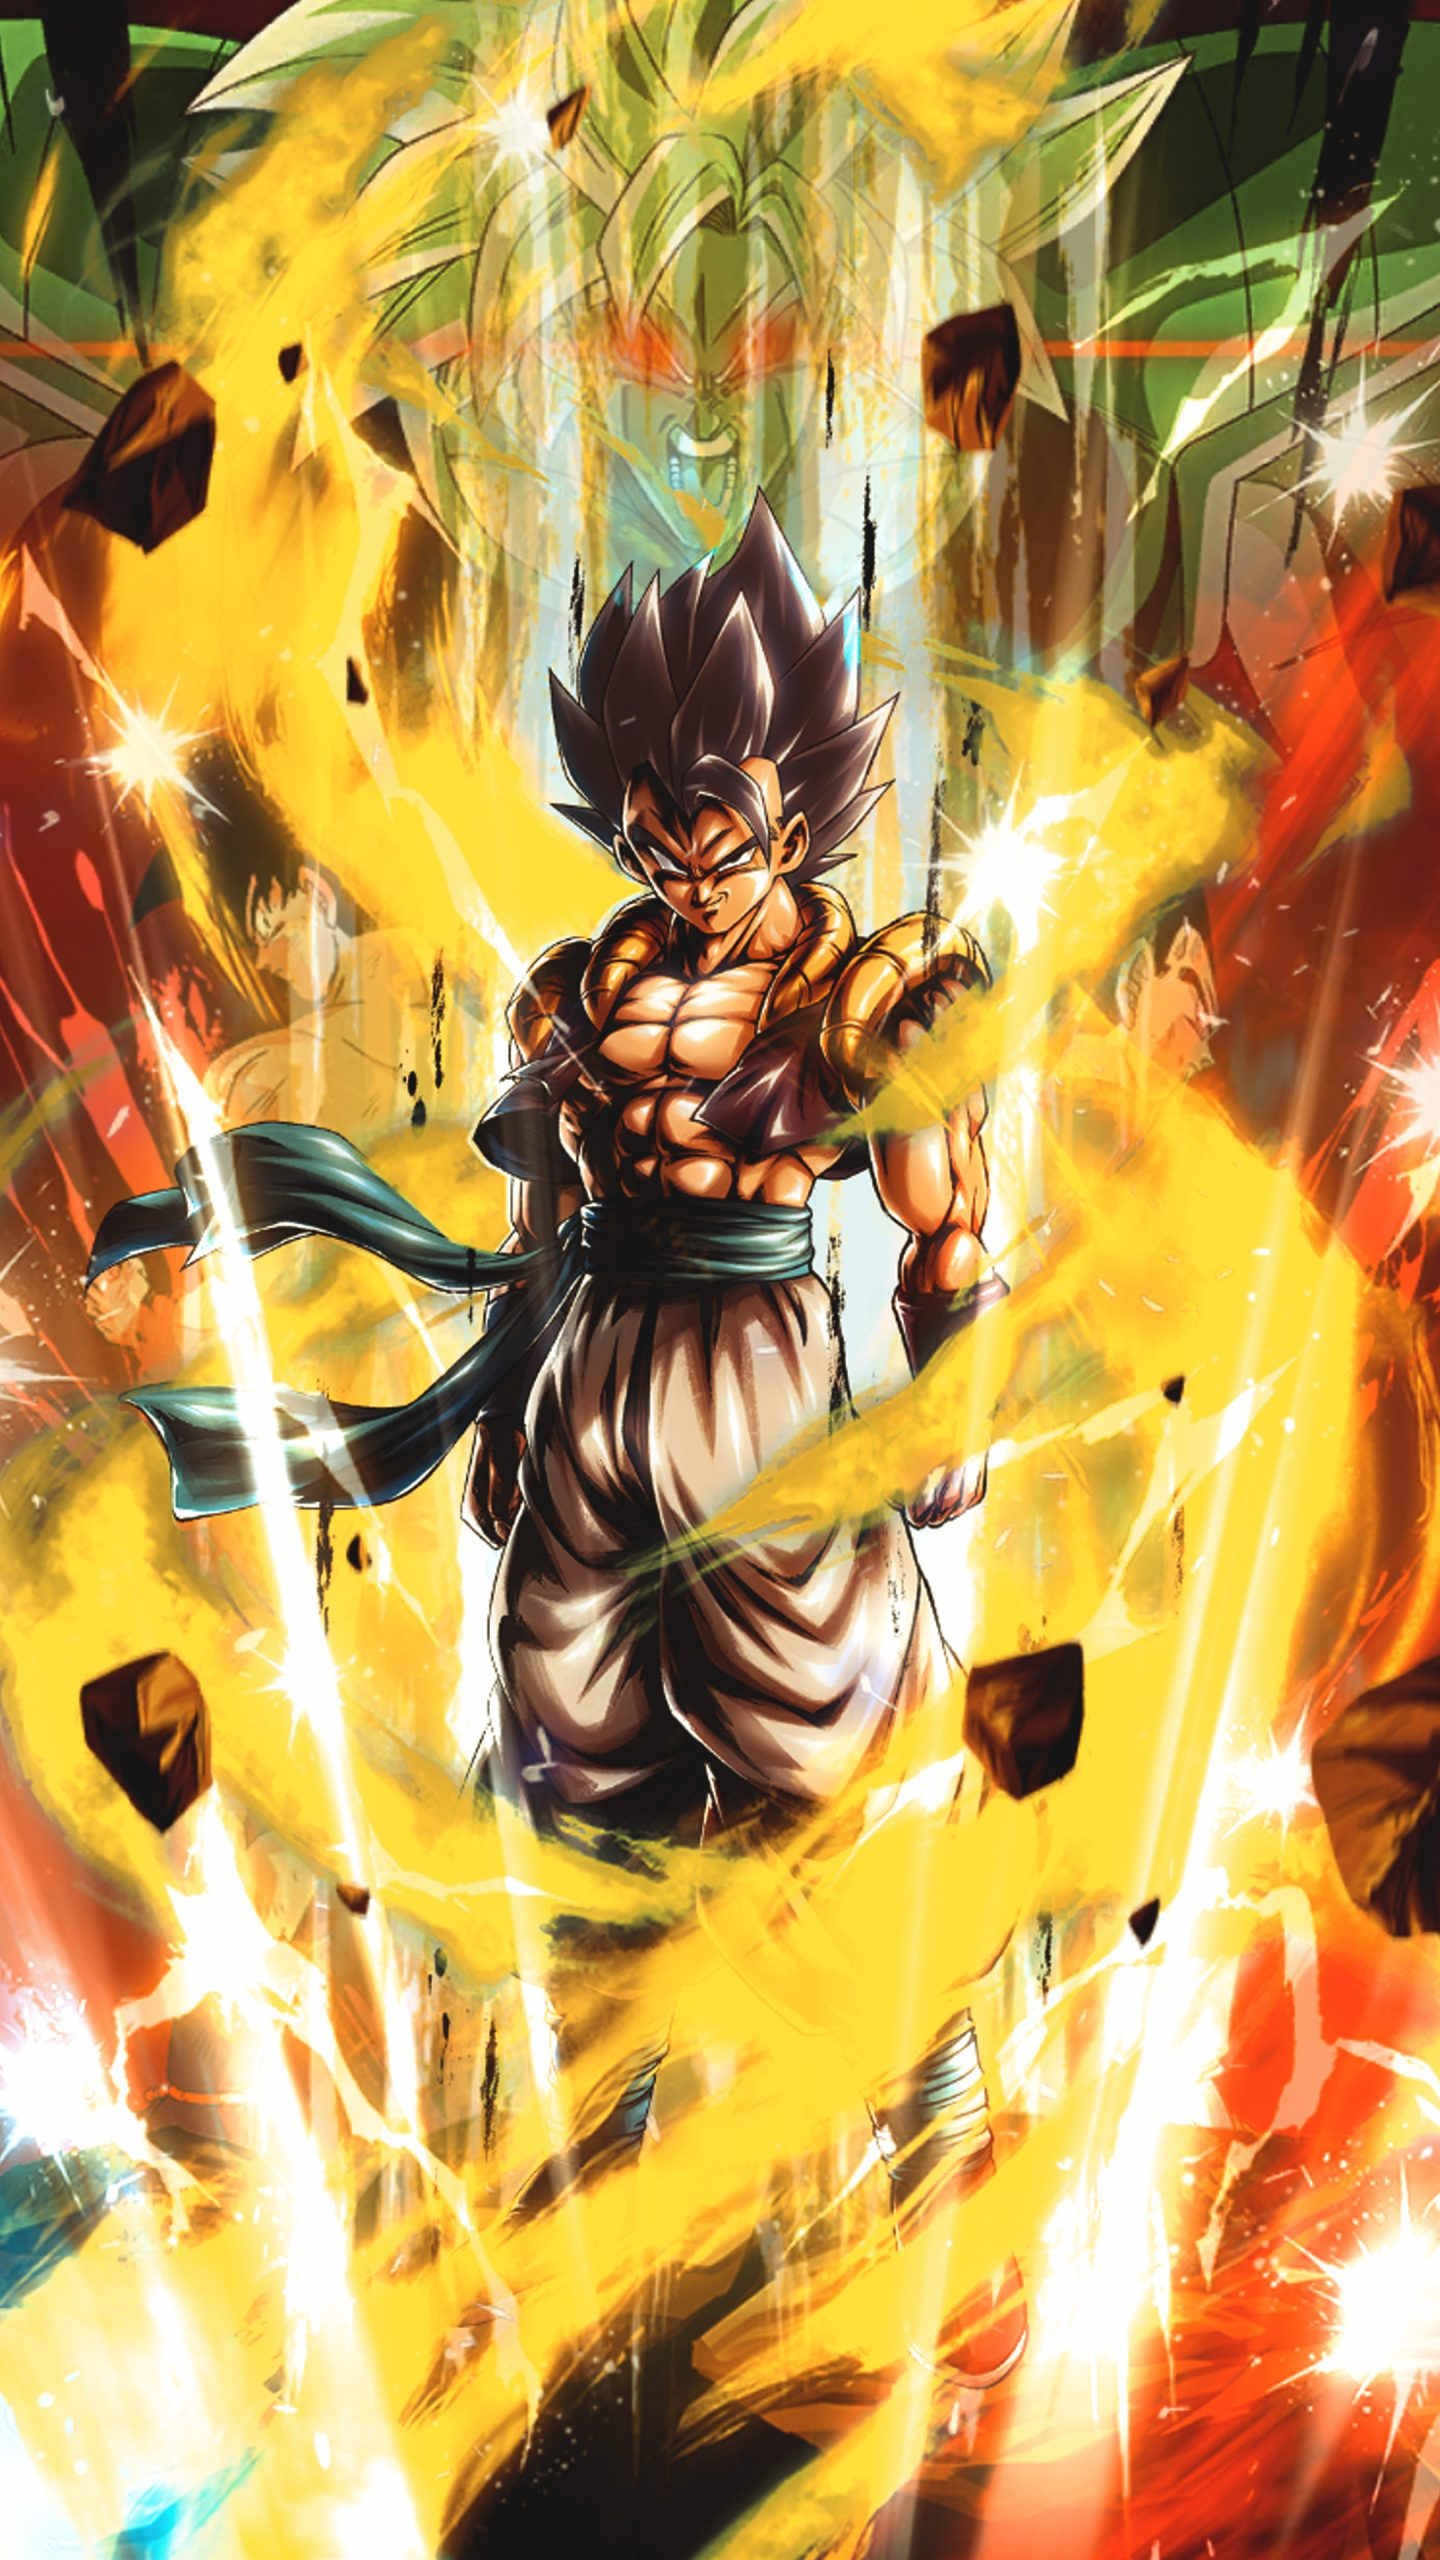 20 4k wallpapers of dbz and super for phones